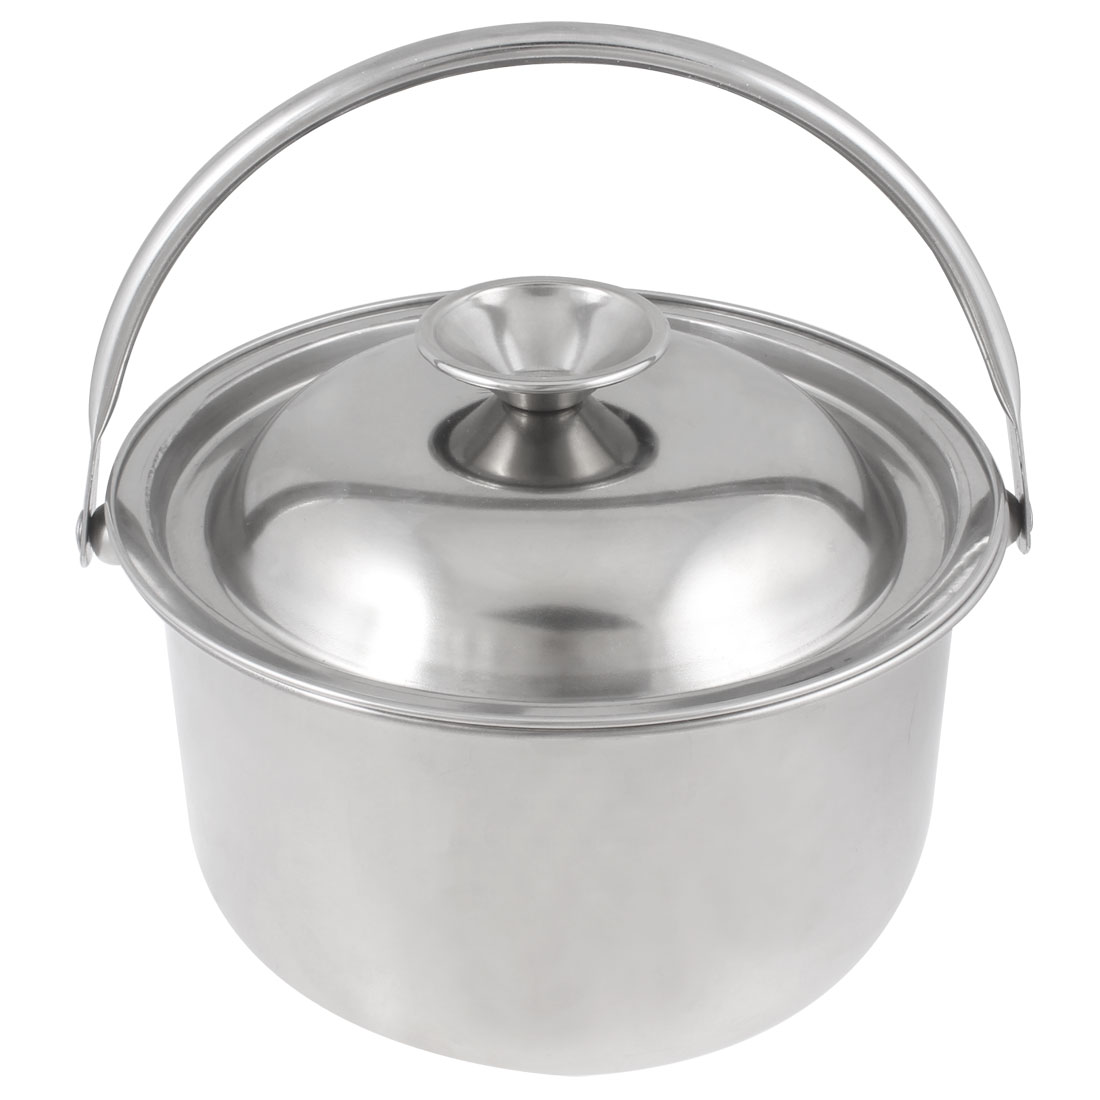 Silver Tone Stainless Steel 16cm Dia Sugar Salt Seasoning Pot Holder Bowl